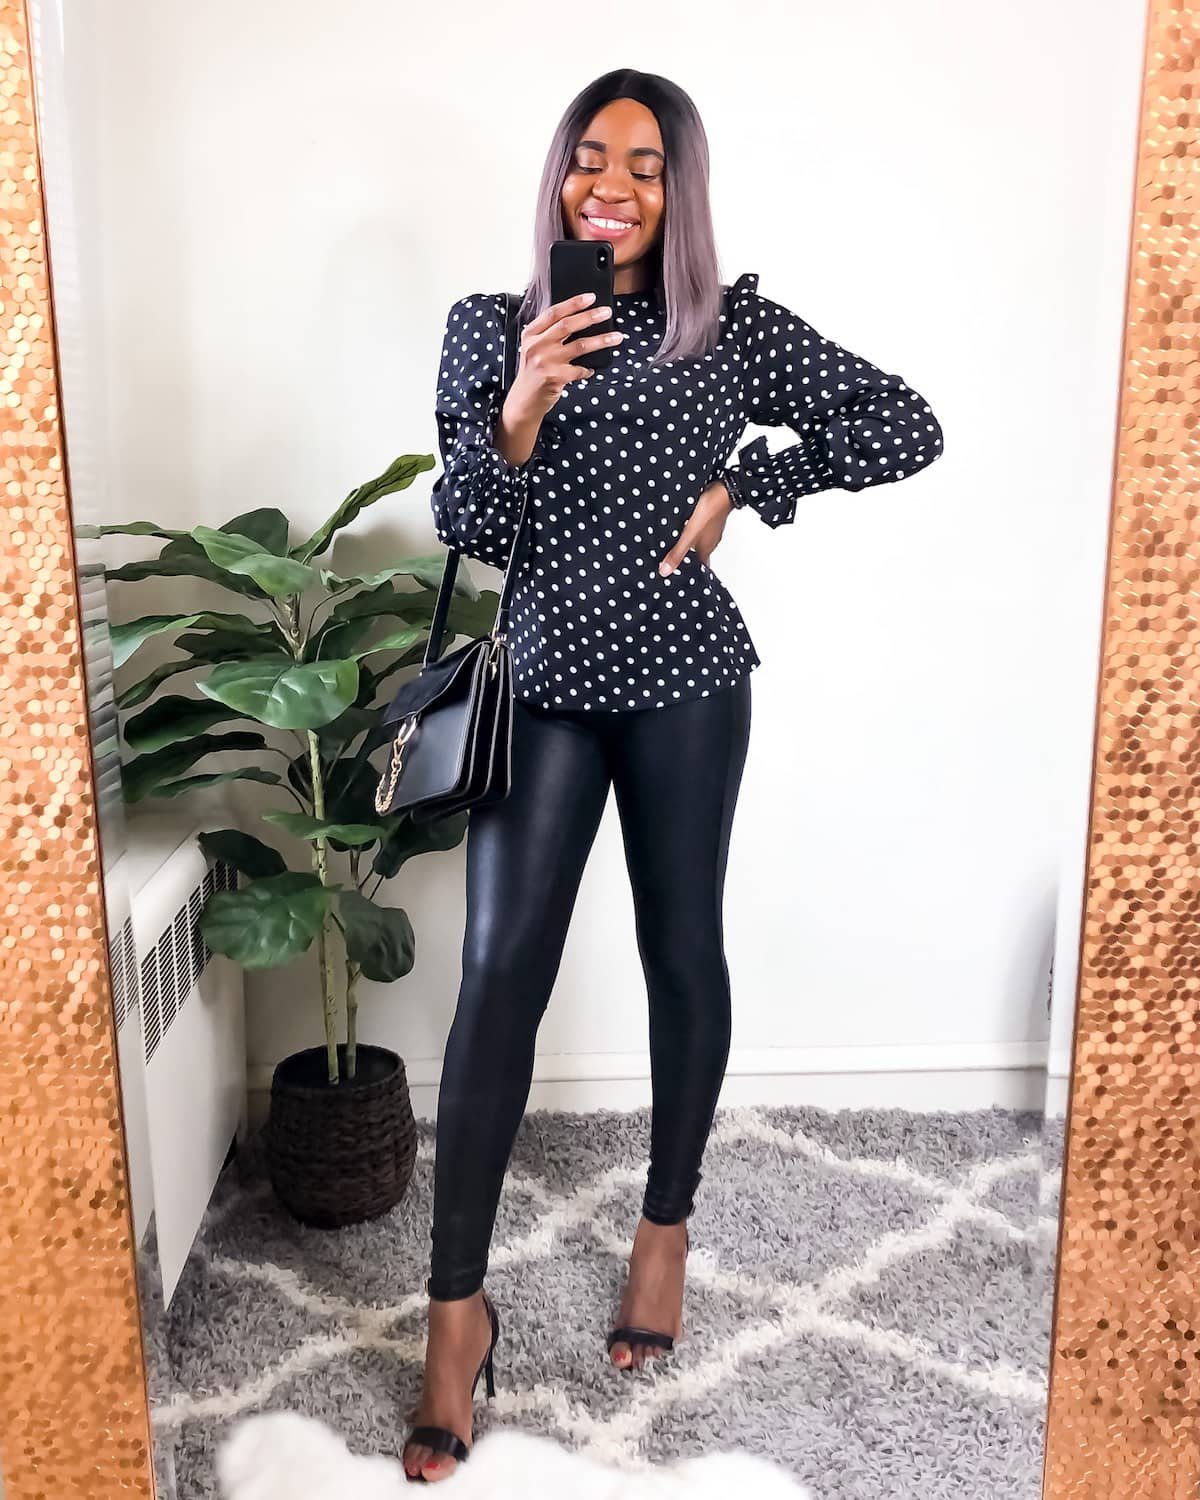 The 15 best faux leather leggings include best-selling leggings from Spanx, Amazon, Target, Commando, BlankNYC and more. Here's a roundup of the best premium and budget-friend options suitable for curvy figures and petite ladies right now.